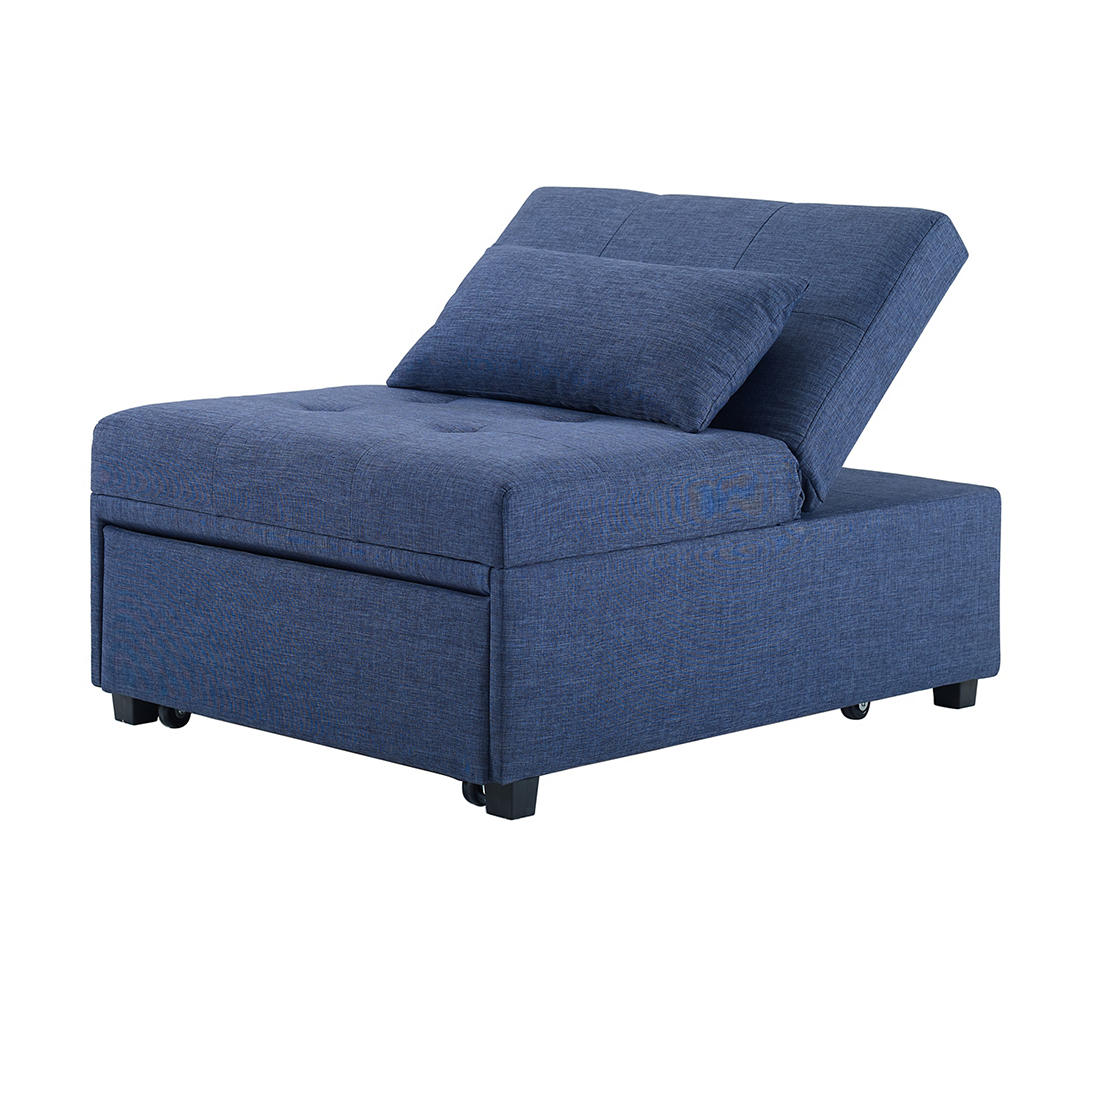 Fabulous Powell Boone Sofa Bed Blue Alphanode Cool Chair Designs And Ideas Alphanodeonline